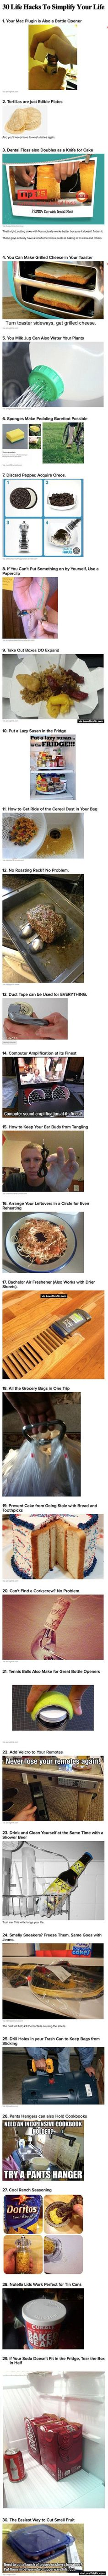 Here are 30 brilliant DIY life hacks that will make your days easier.  Most of these will have you saying